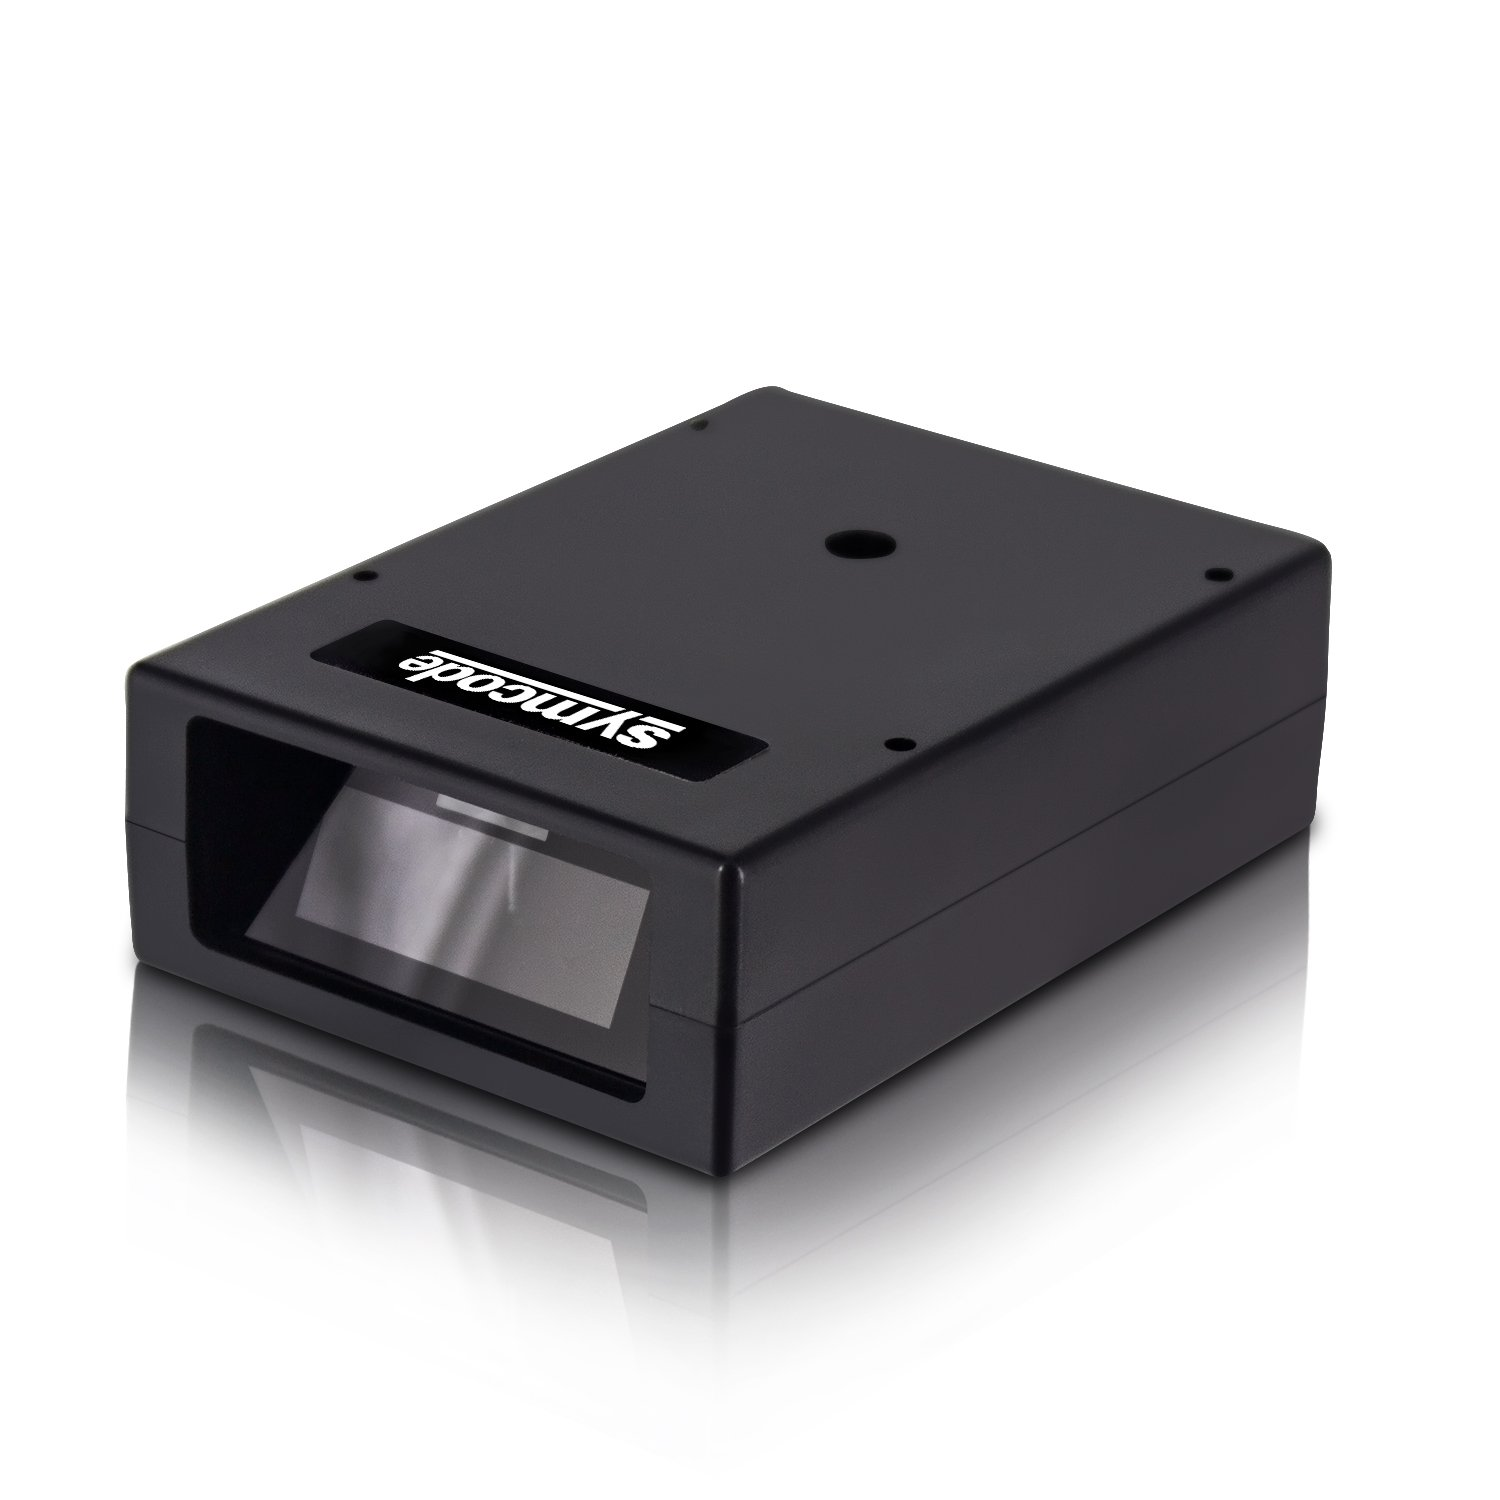 Lector Cod Barras Fijo : Symcode Embedded Mini Usb Fixed ..